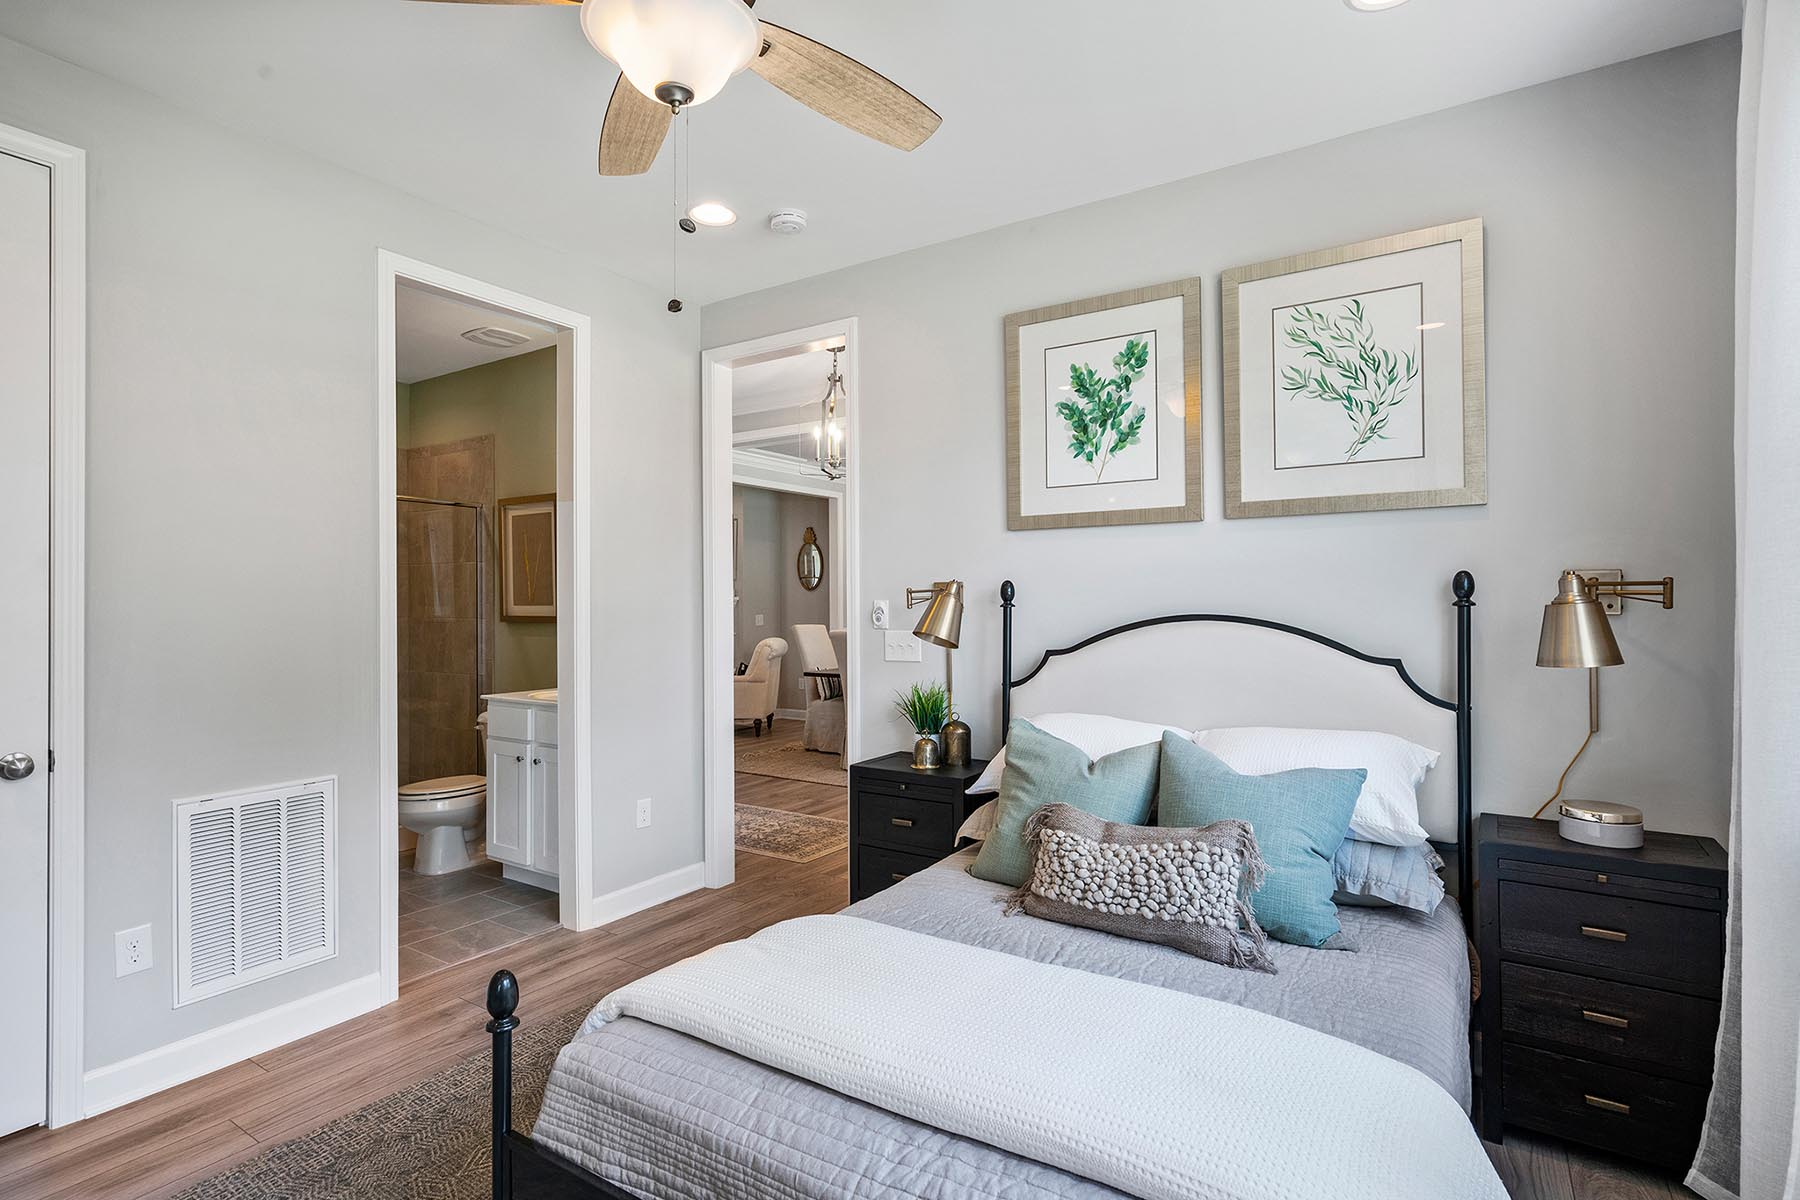 Larkin Plan Bedroom at Portofino in Clayton North Carolina by Mattamy Homes